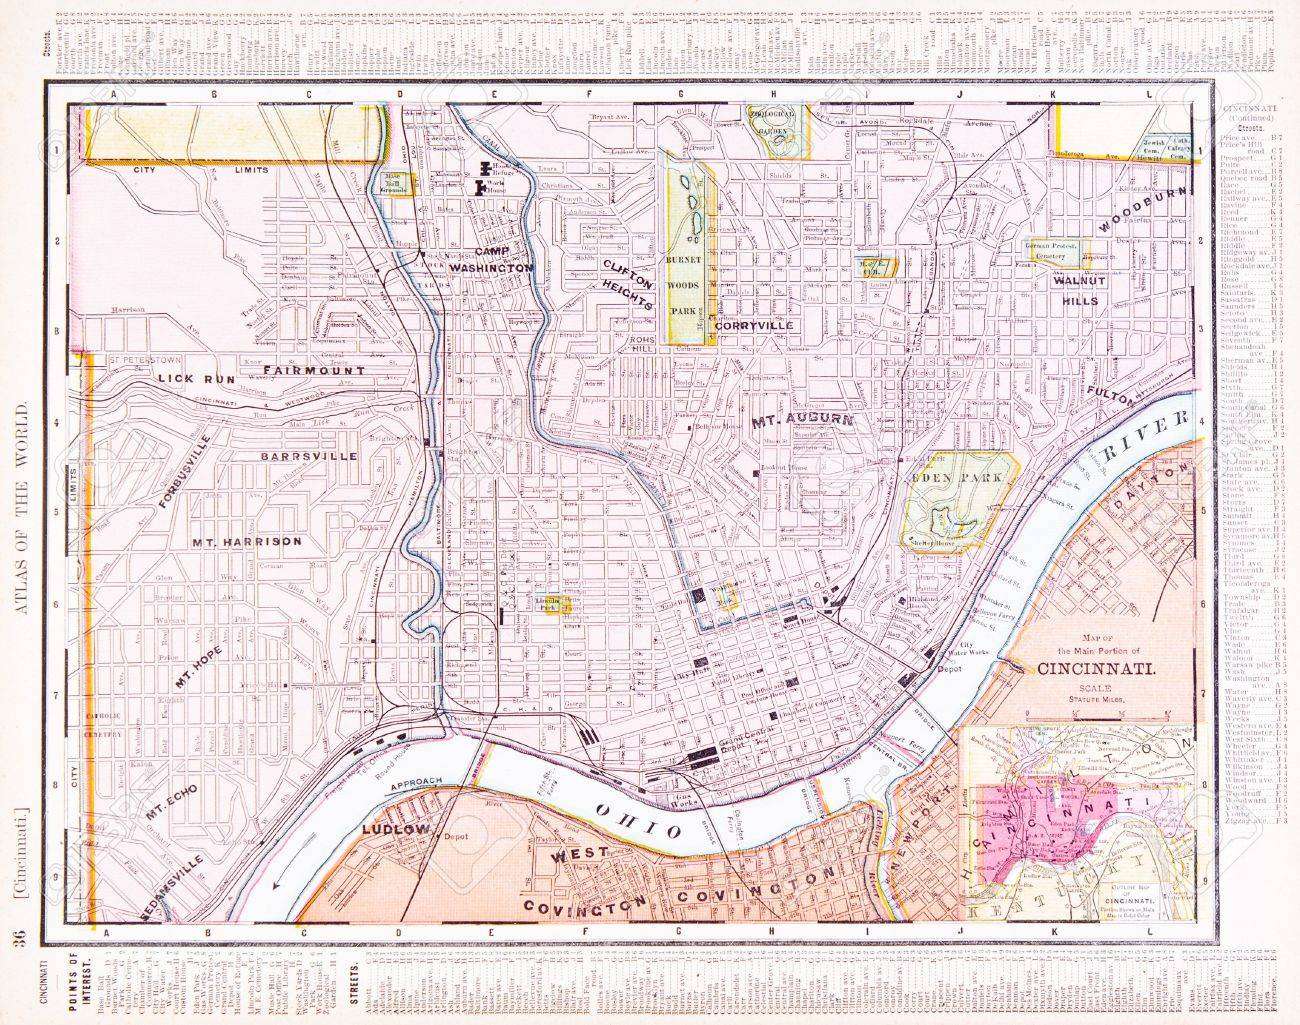 Vintage Map Of Cincinnati, OH, USA, 1900 Stock Photo, Picture And ...